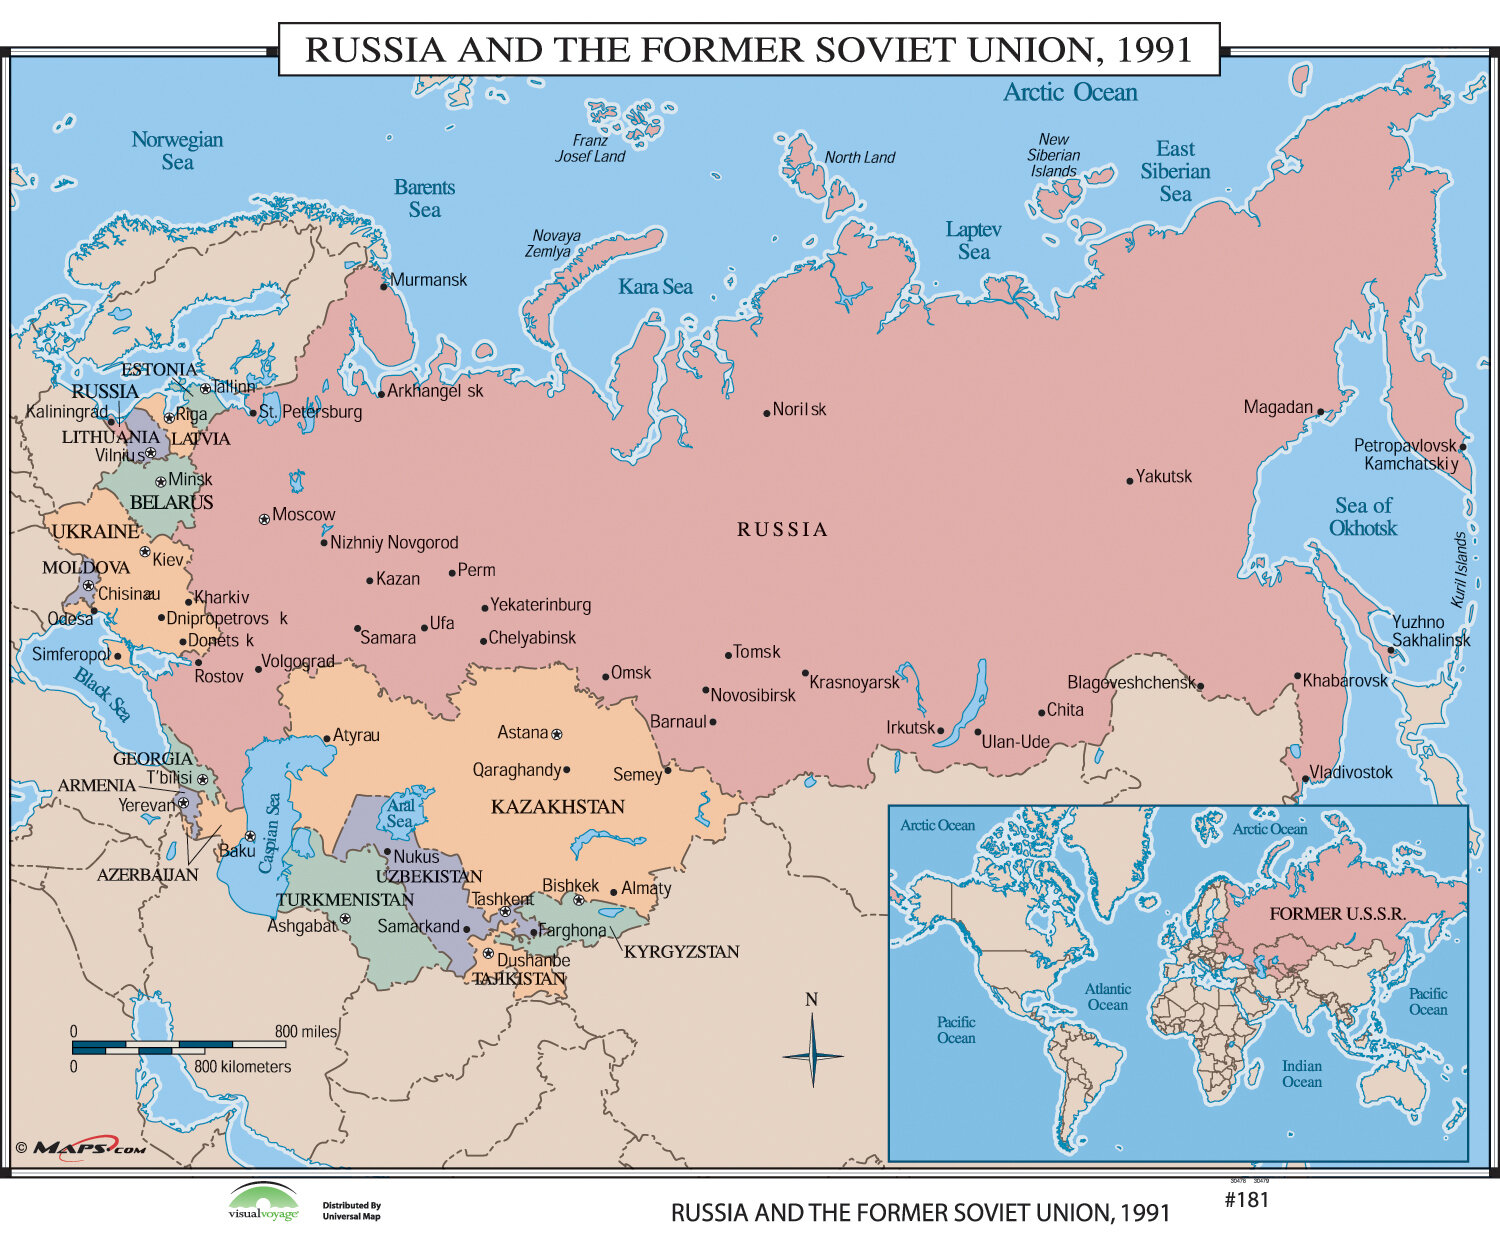 World History Wall Maps - Russia & the Former Soviet Union 1991 on markovo russia map, bashkiria russia map, yaroslavl russia map, vladivostok map, grozny russia map, ufa russia map, novgorod russia map, yurga russia map, moscow map, elista russia map, warsaw russia map, crimea russia map, tatarstan russia map, irkutsk map, tula russia map, samara russia map, serpukhov russia map, astrakhan russia map, tynda russia map, volsk russia map,